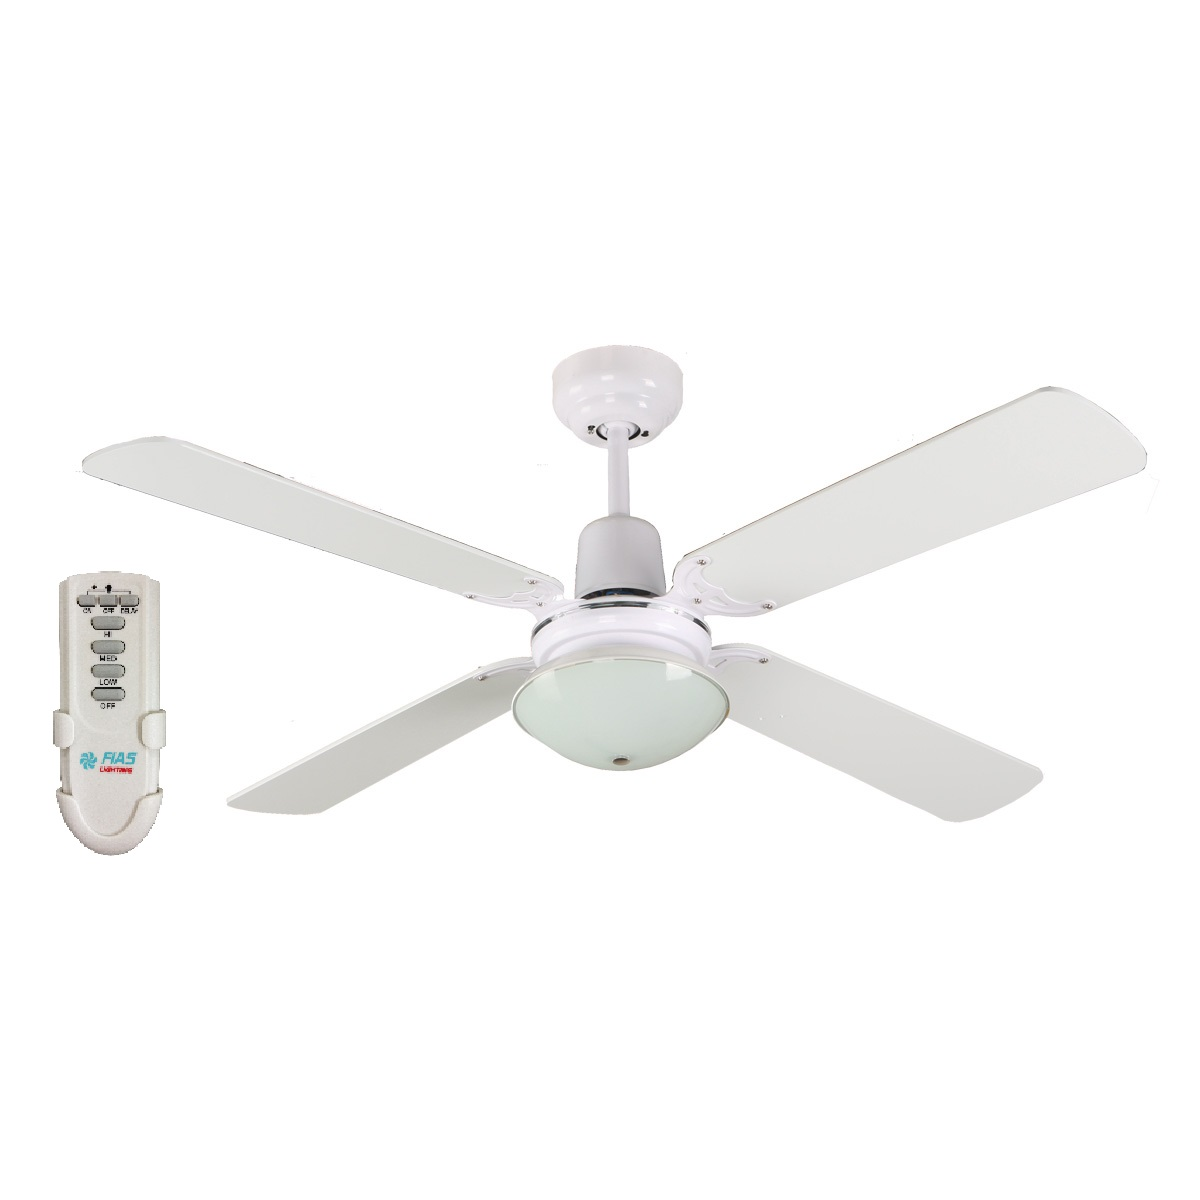 Ramo 48 Inch Ceiling Fan With Light And Remote Control White Ceiling Fan Specials